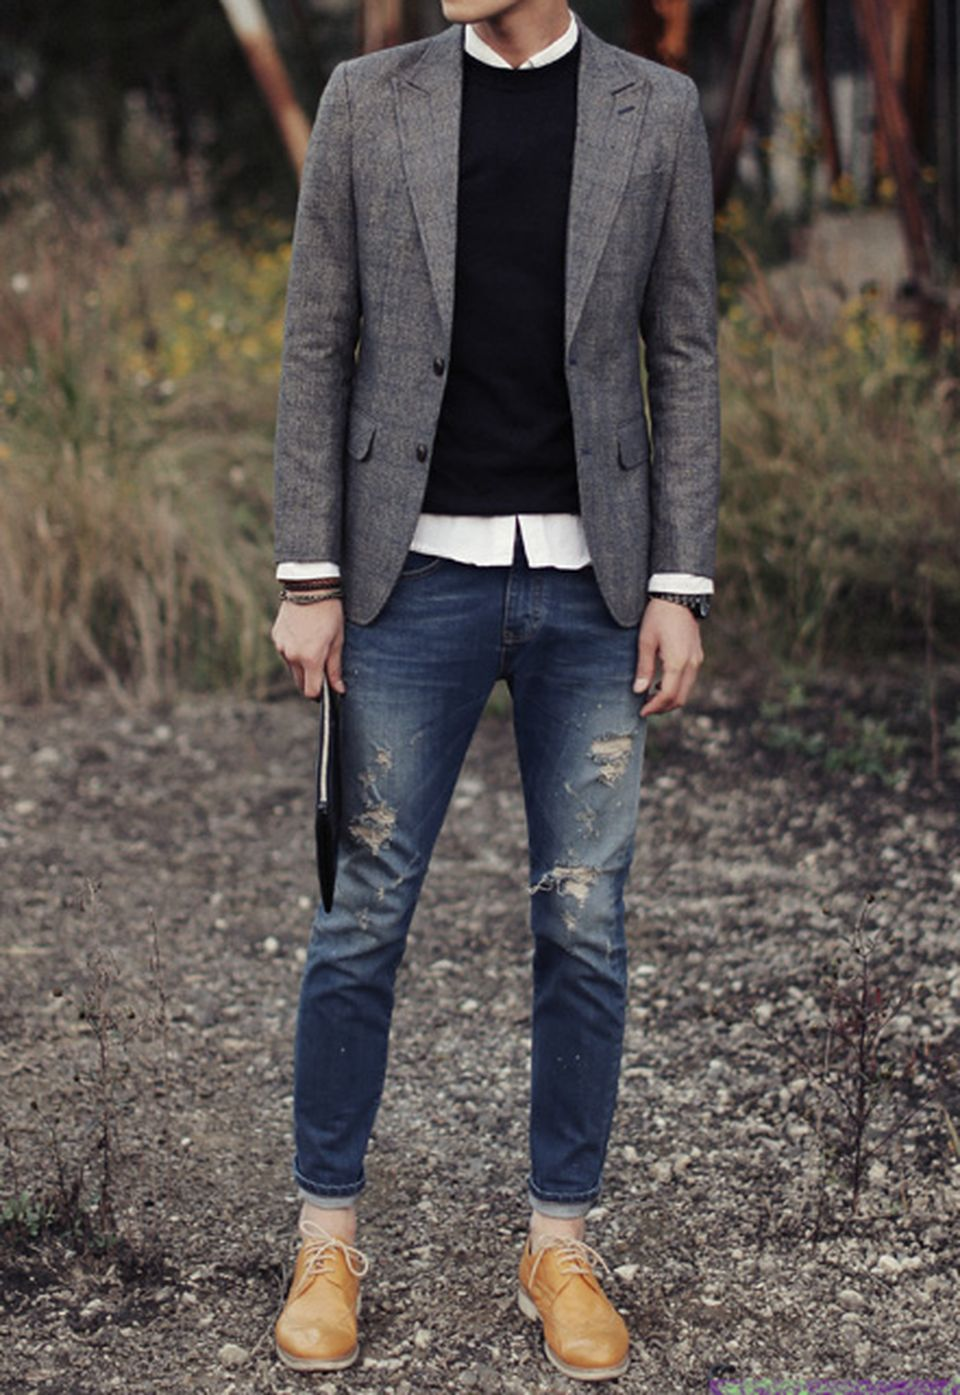 Casual Indie Mens Fashion Outfits Style 8: Casual Indie Mens Fashion Outfits Style 43